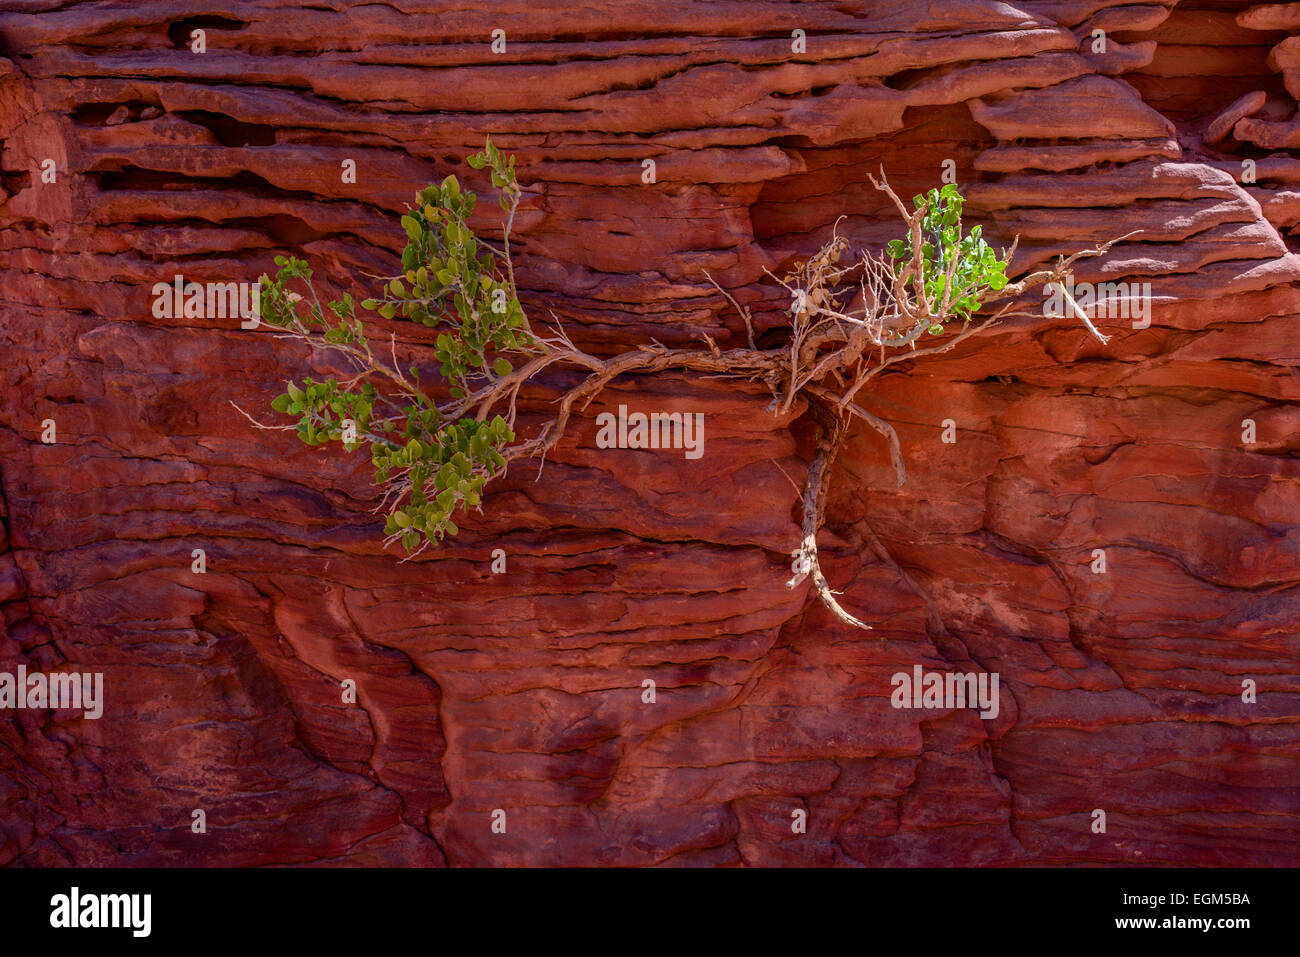 Bush growing in walls of Colored Canyon, Sinai, Egypt. Coloured Canyon is a rock formation and dry riverbed on Sinai - Stock Image